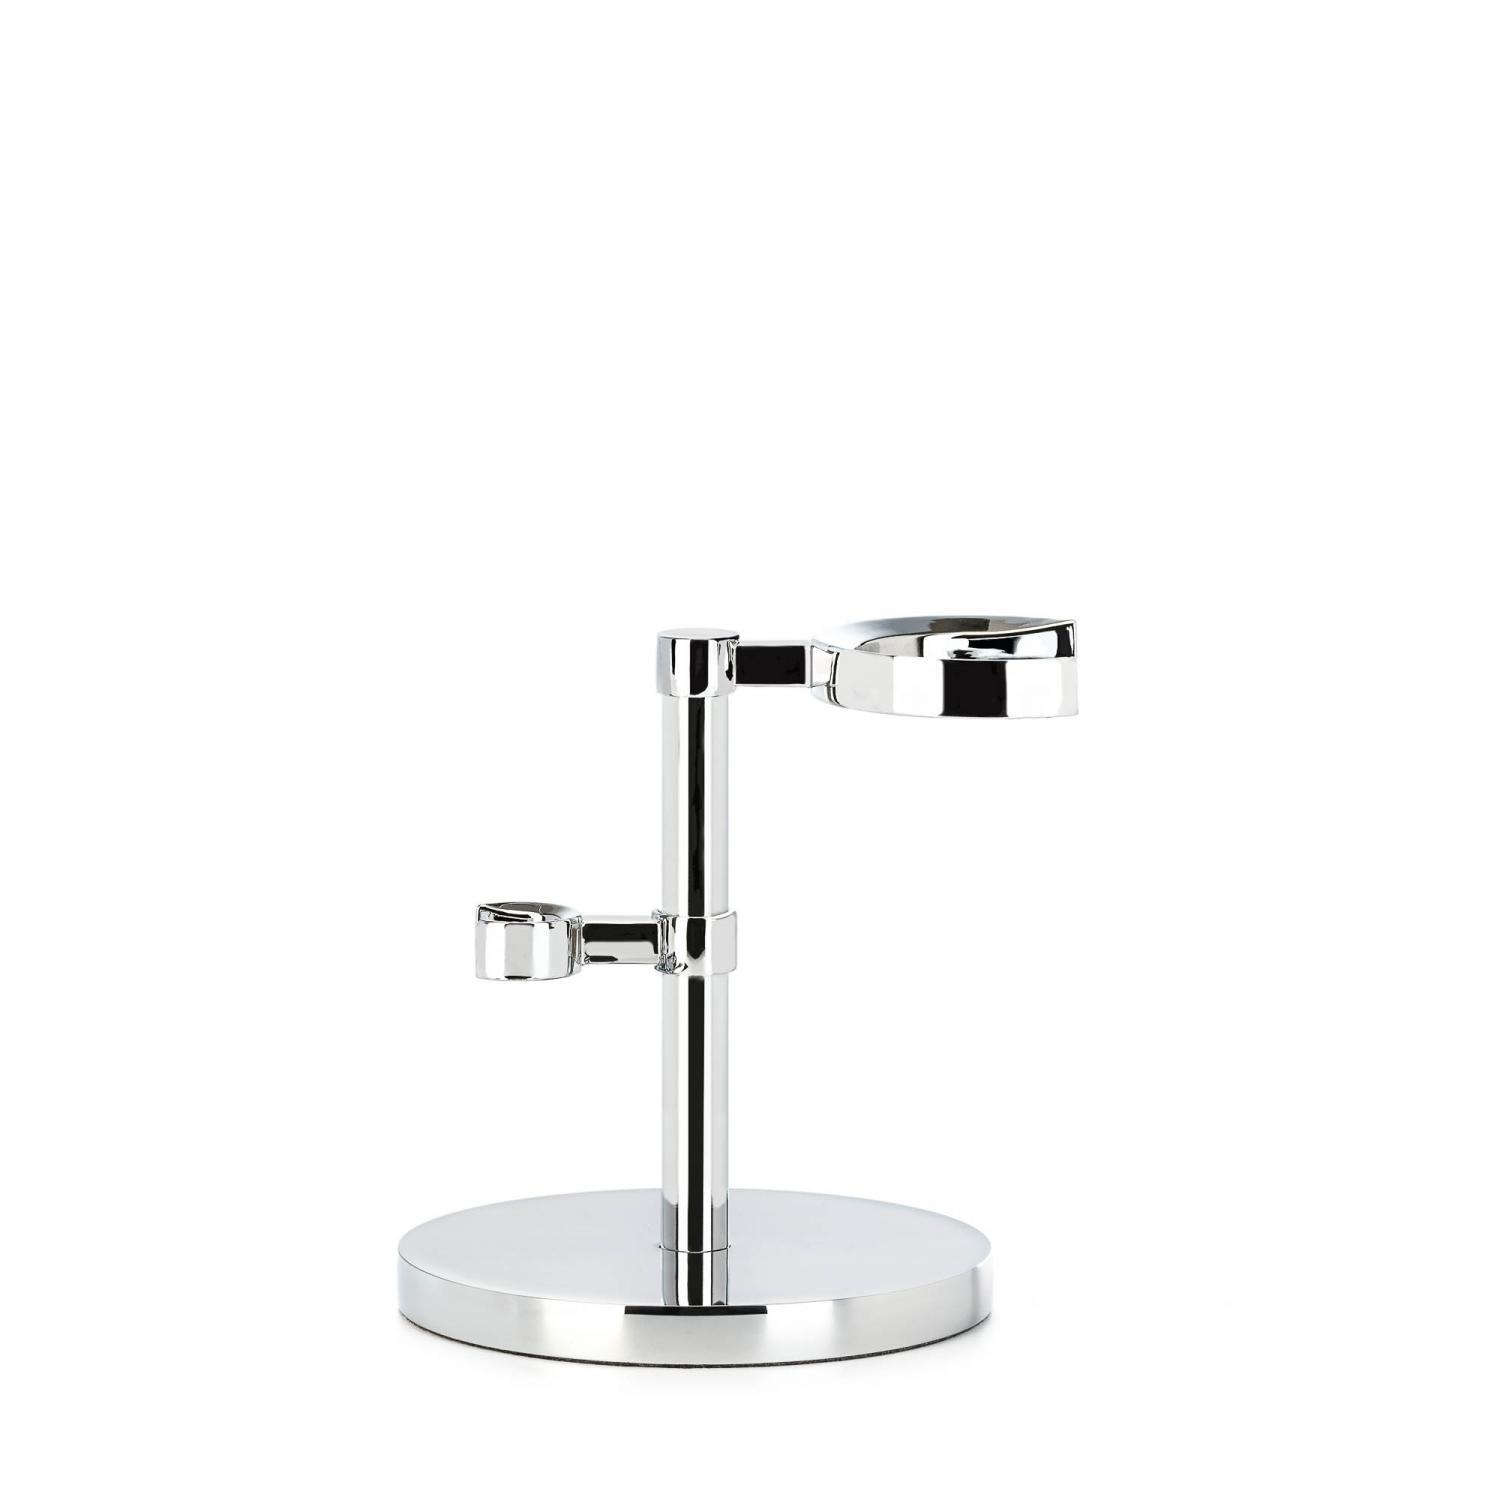 MUHLE Chrome HEXAGON Shaving Brush and Razor Stand - RHMHXG